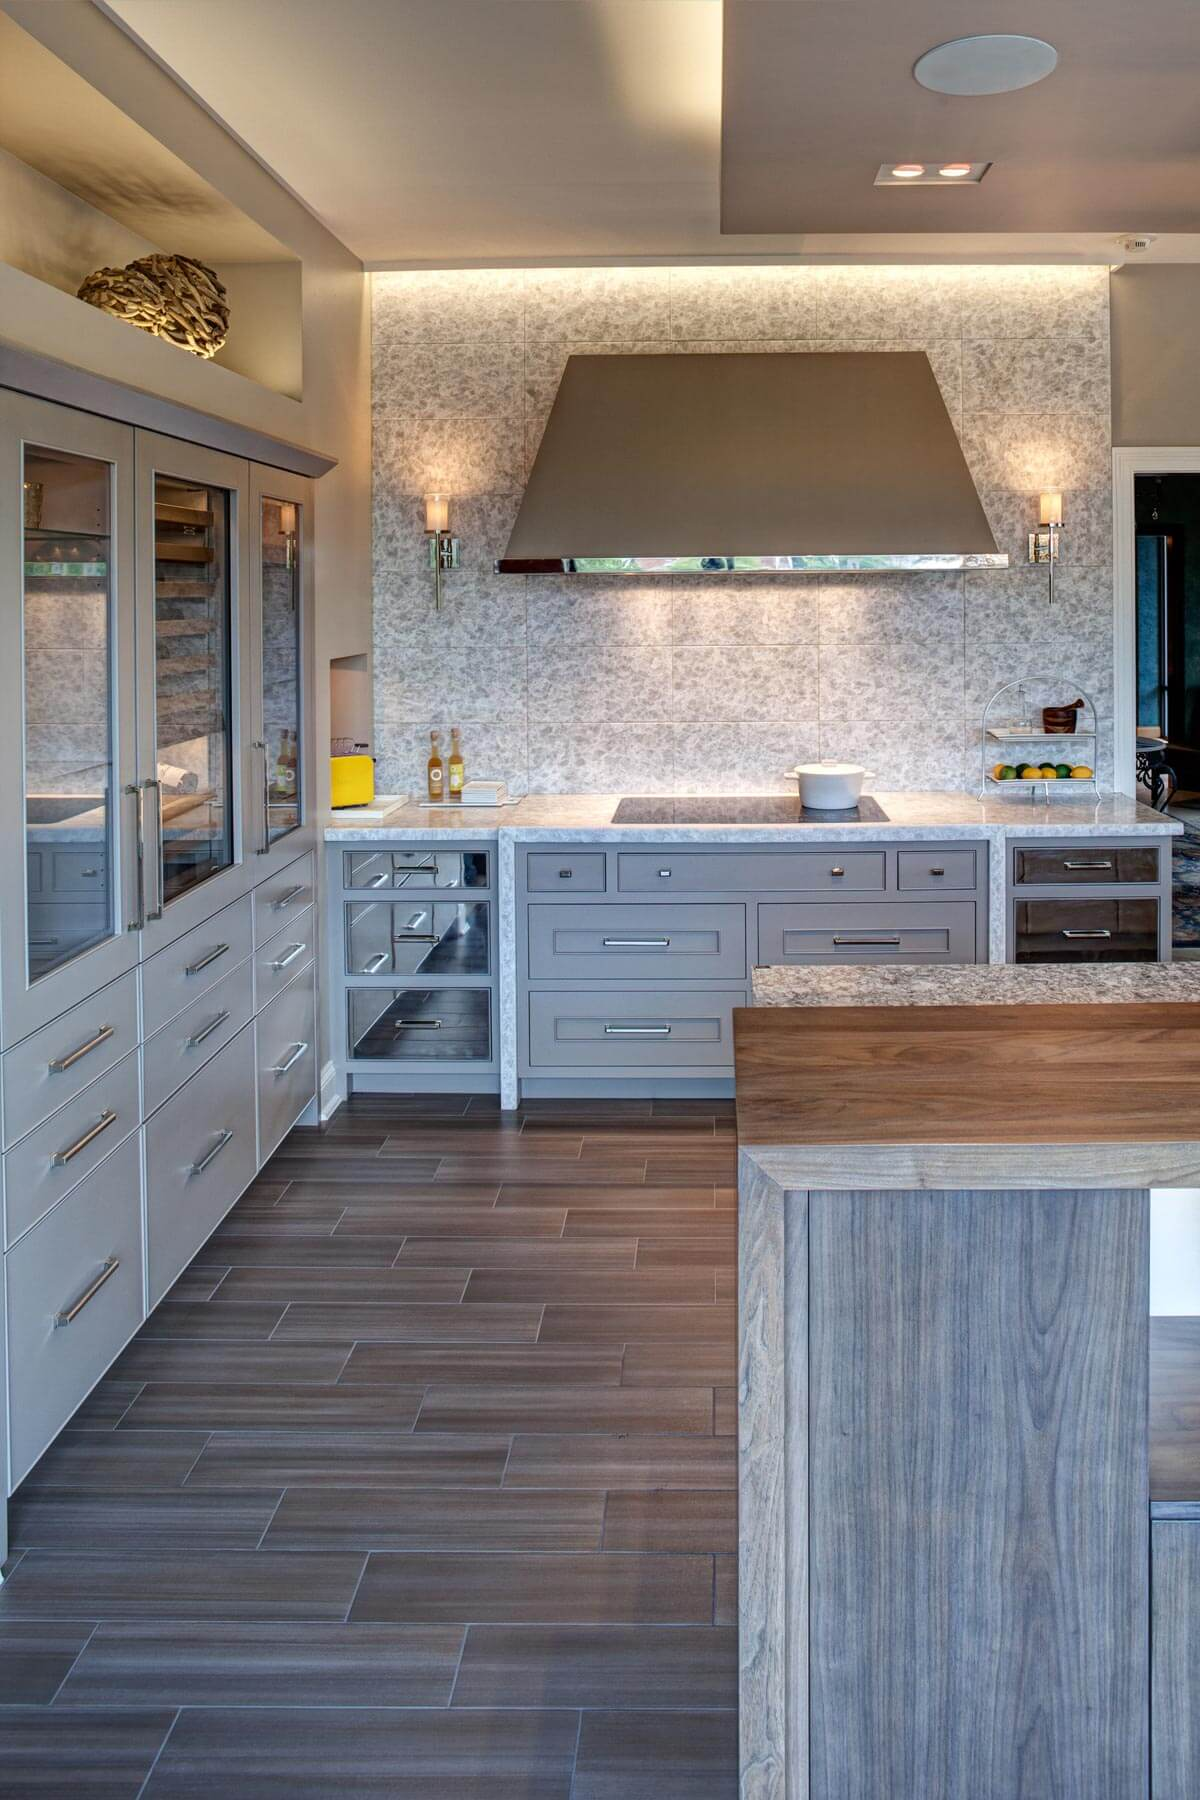 Looking over the island edge, we see the smoke colored porcelain floor tiles laid in a staggered pattern for depth, with the polished nickel drawer fronts flanking the cooking space.